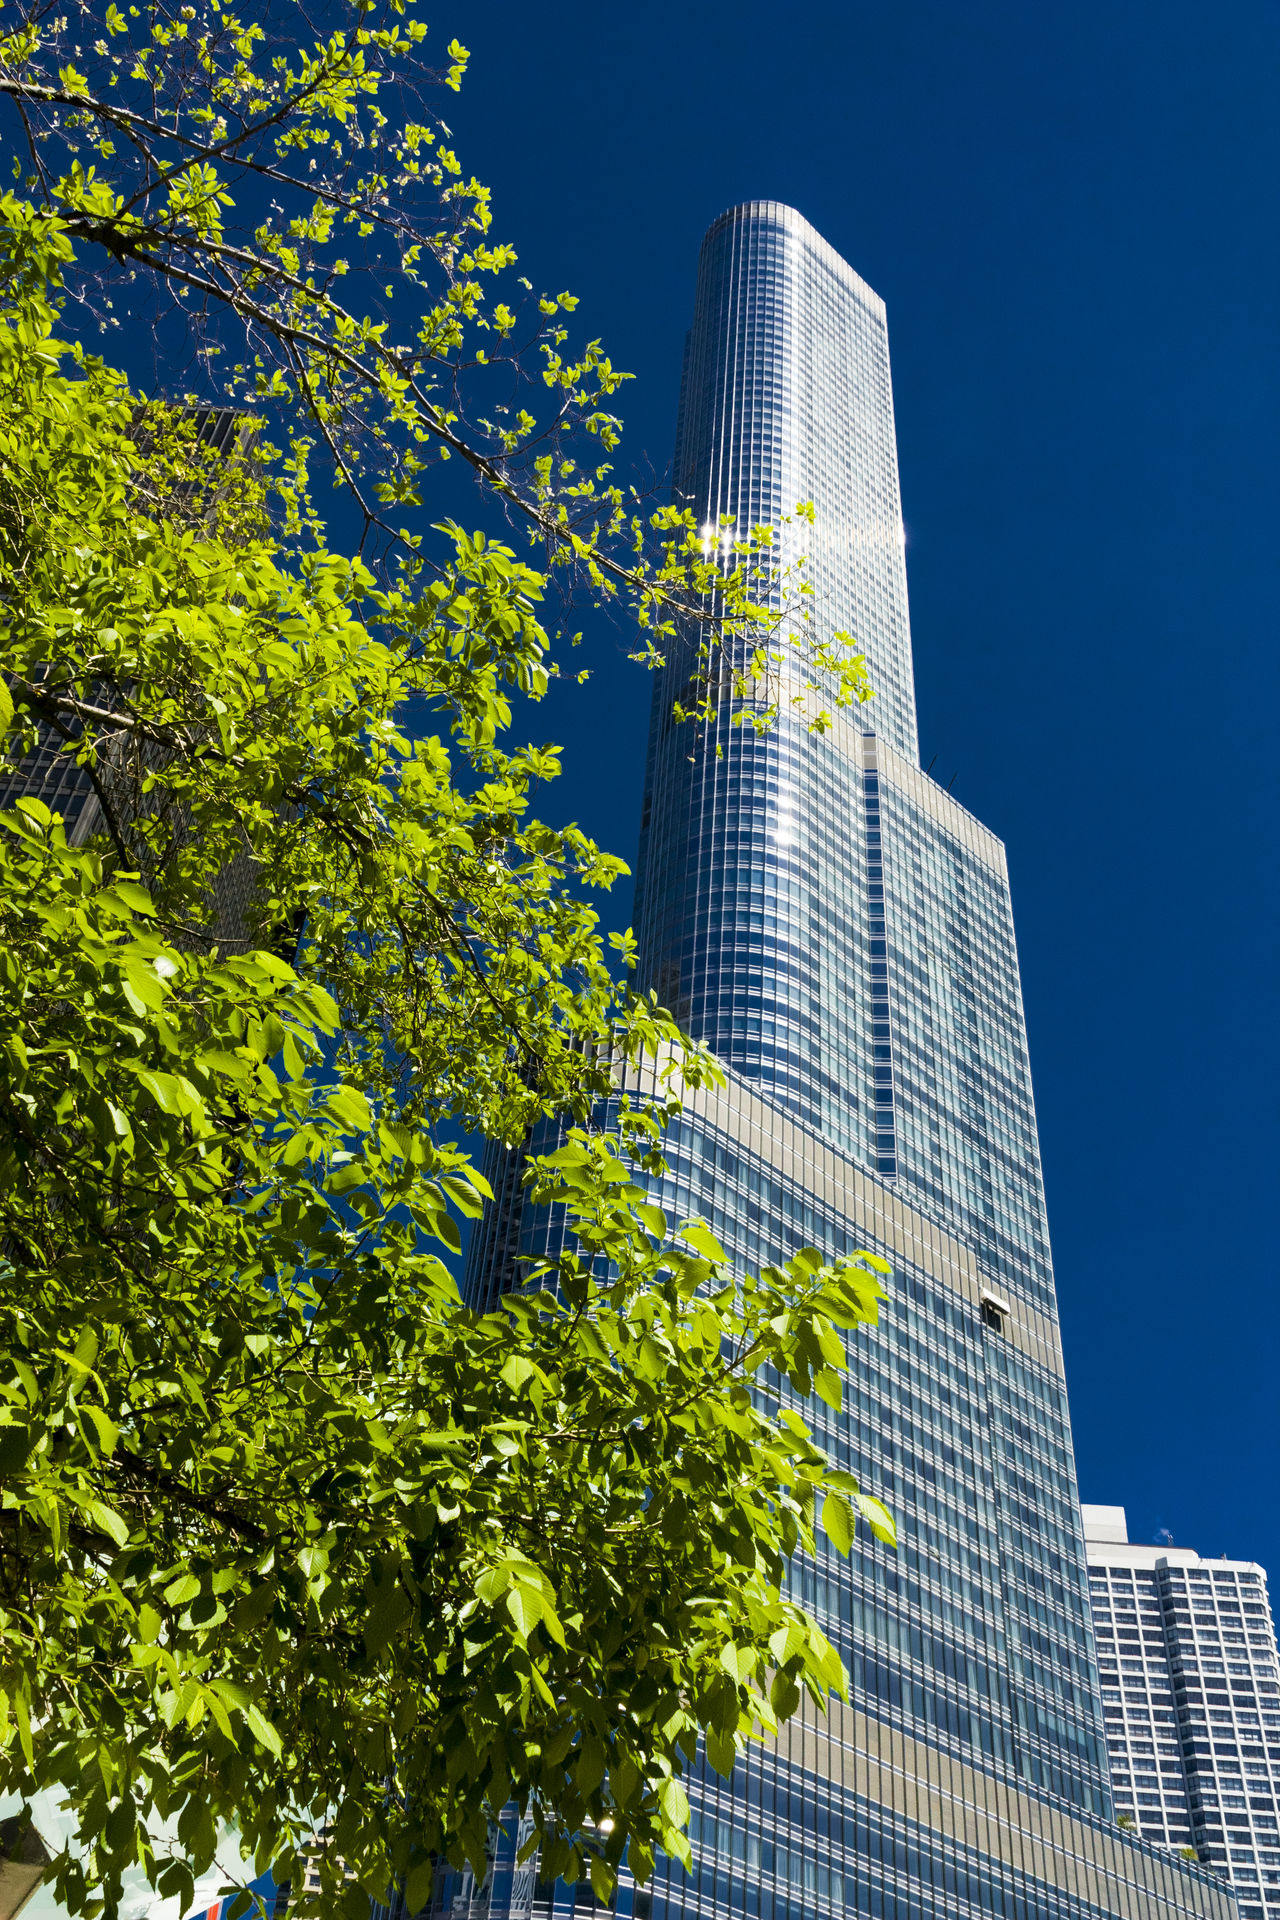 Architecture Chicago Donald Trump Green Sky Springcolors Trump Trump Building Trump Tower